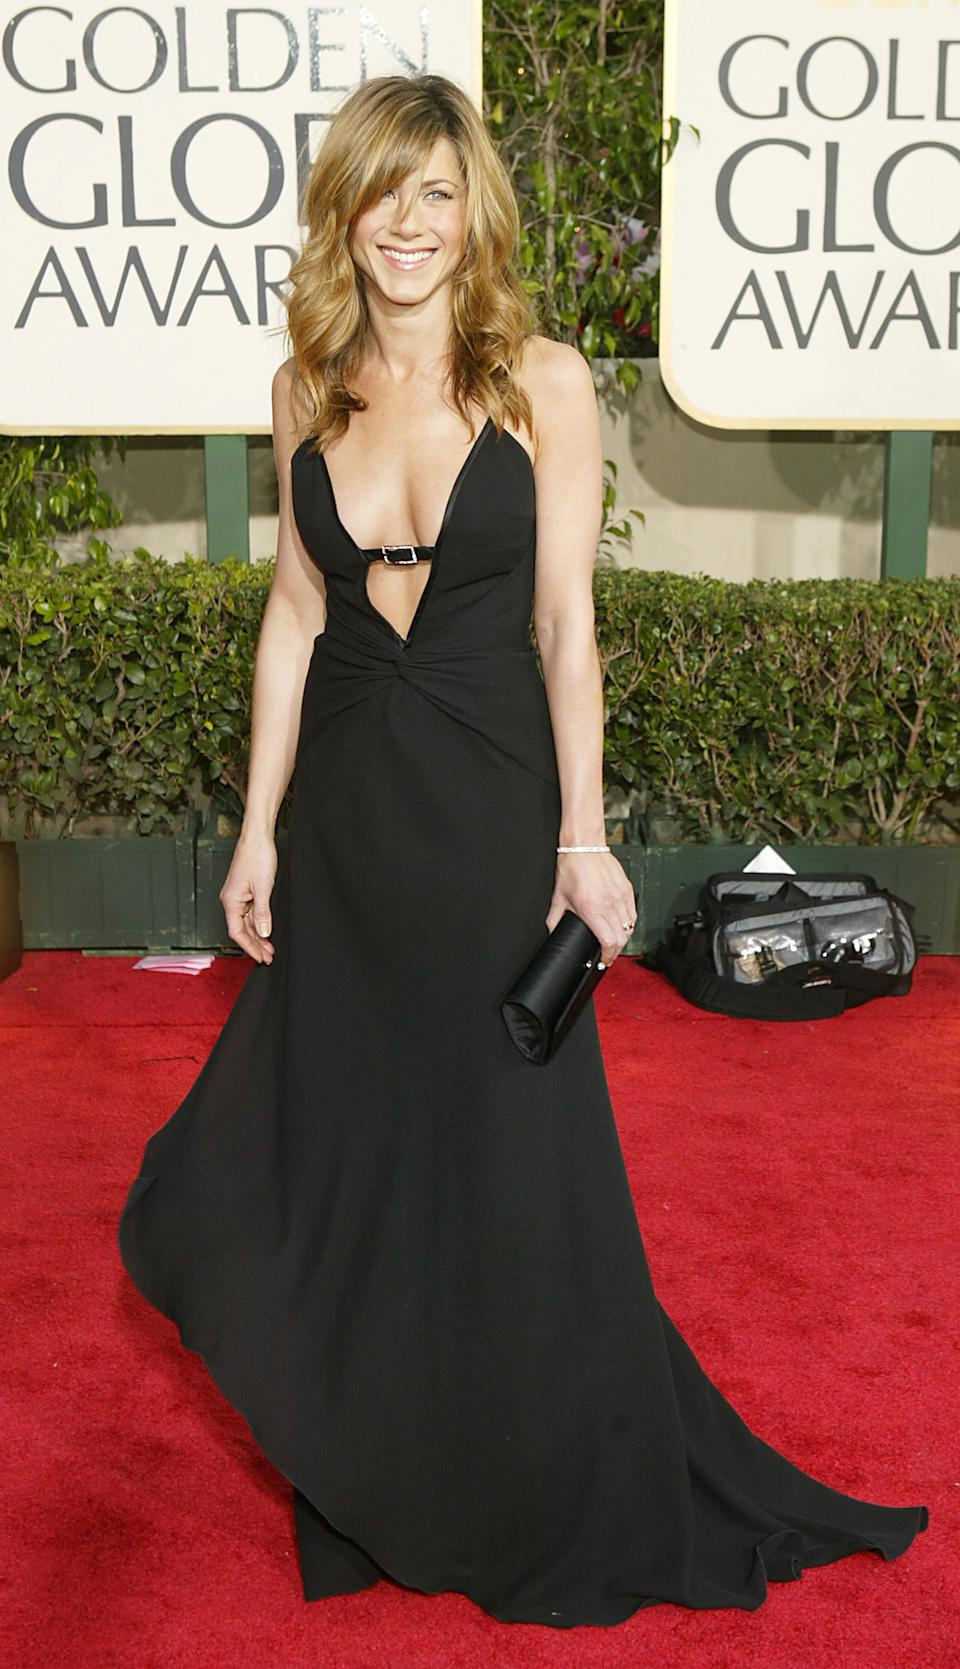 """<p>I'm sure we can all agree that Jennifer Aniston stunned in this sleek, sultry black gown. Fun fact: This was Aniston's last Golden Globes as Rachel from """"Friends,"""" so it's only right that she went out with a bang! (Image via Getty Images)</p>"""